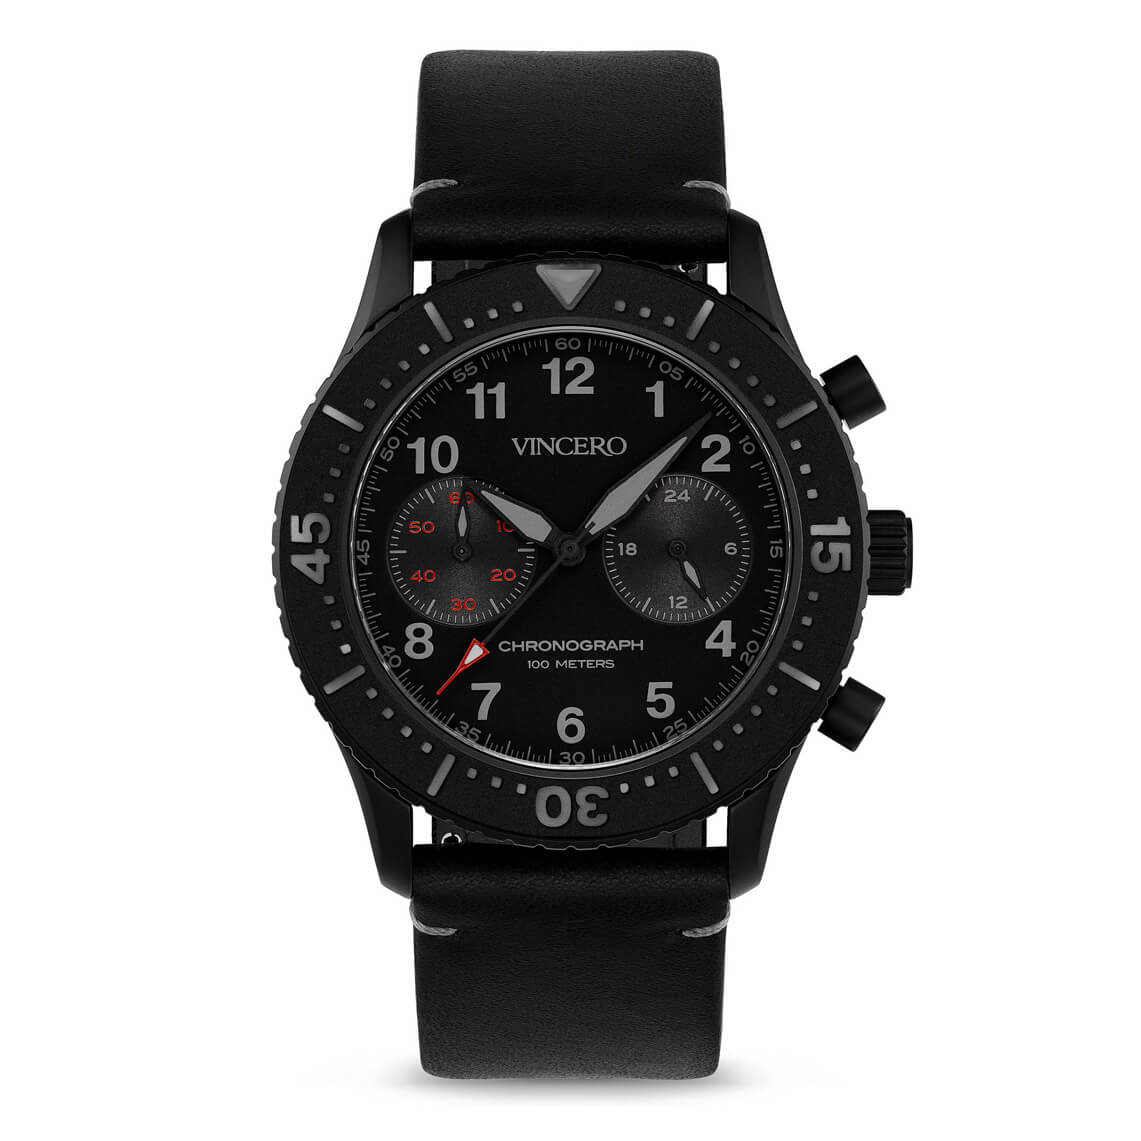 Vincero Watches - The Outrider